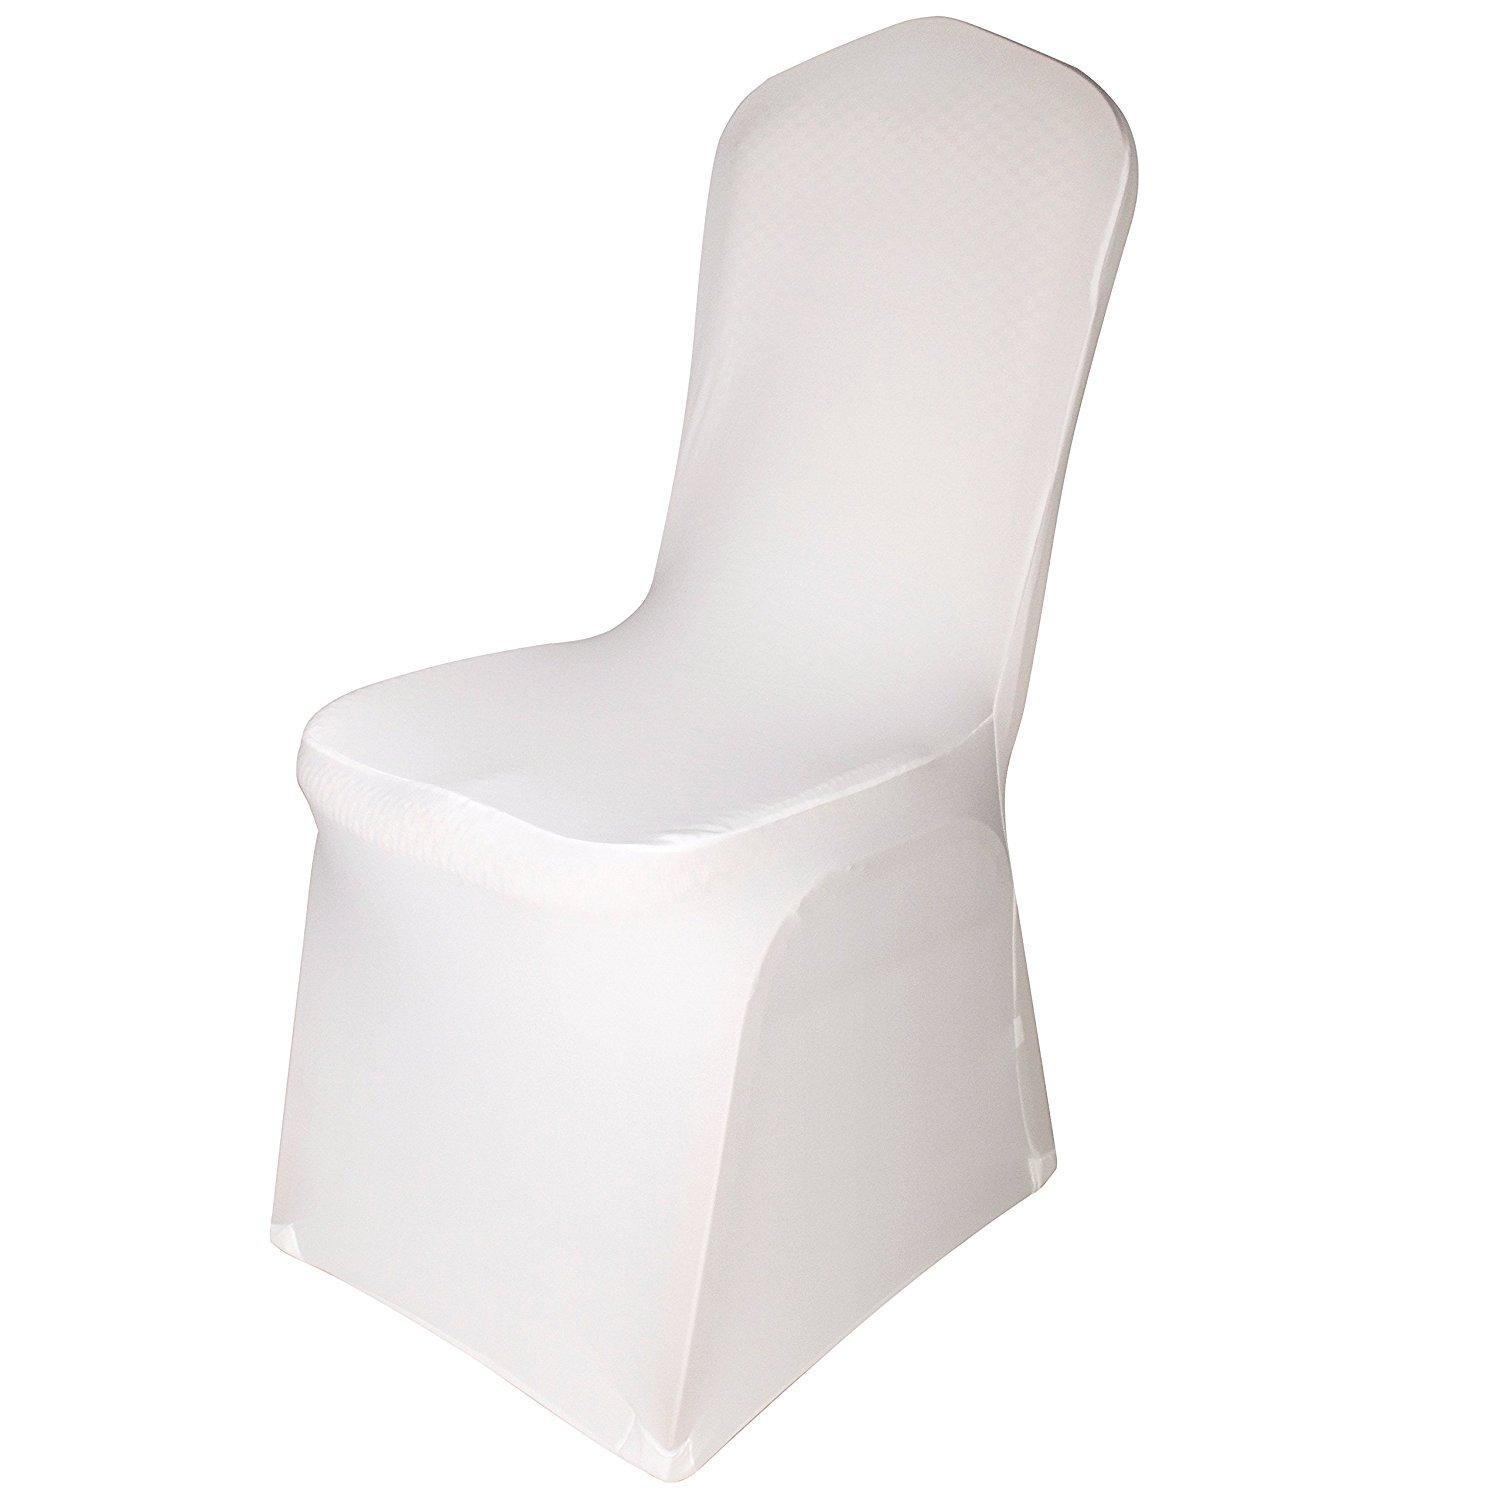 Emart Set of 100pcs Ivory Color Polyester Spandex Banquet Wedding Party Chair Covers